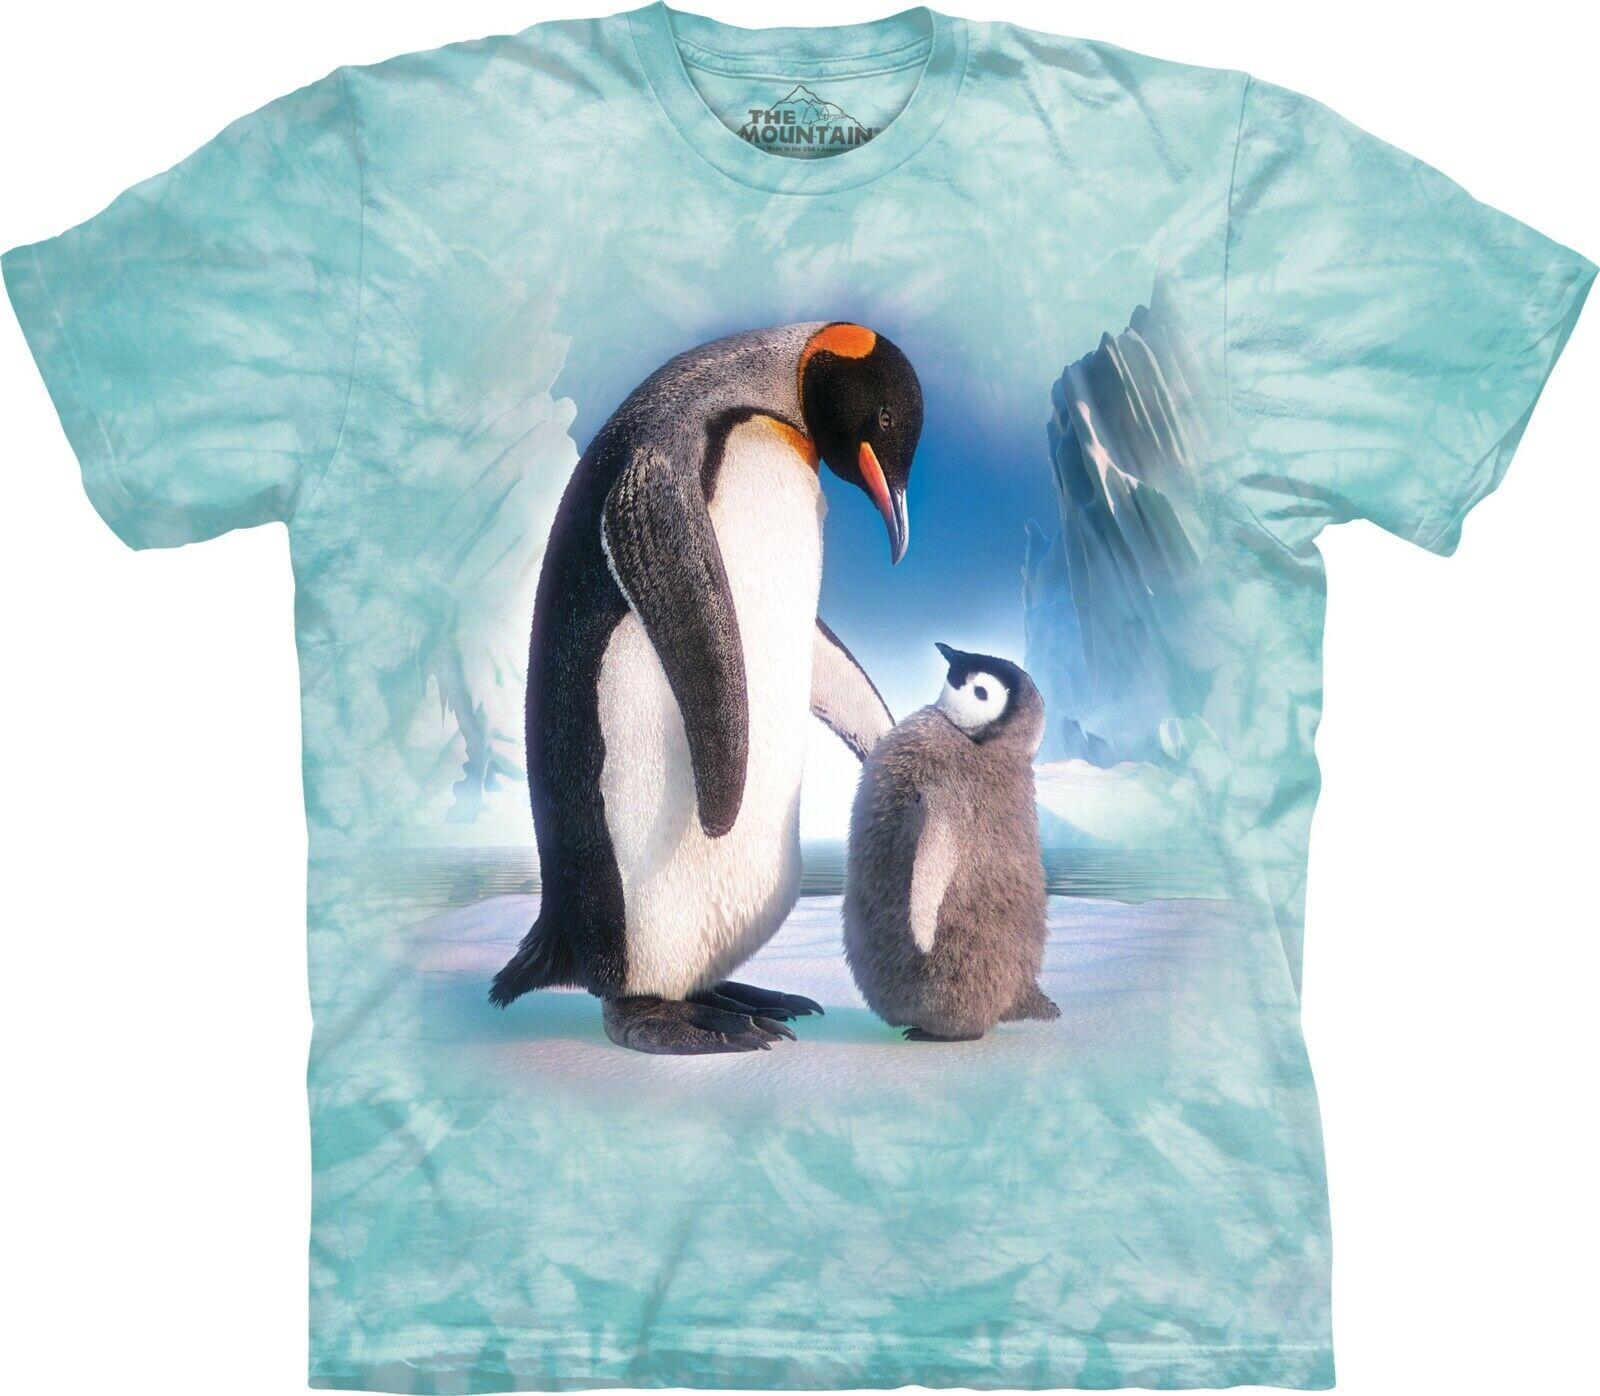 The Mountain Unisex Adult The Next Next Next Emperor Penguin T Shirt | Komfort